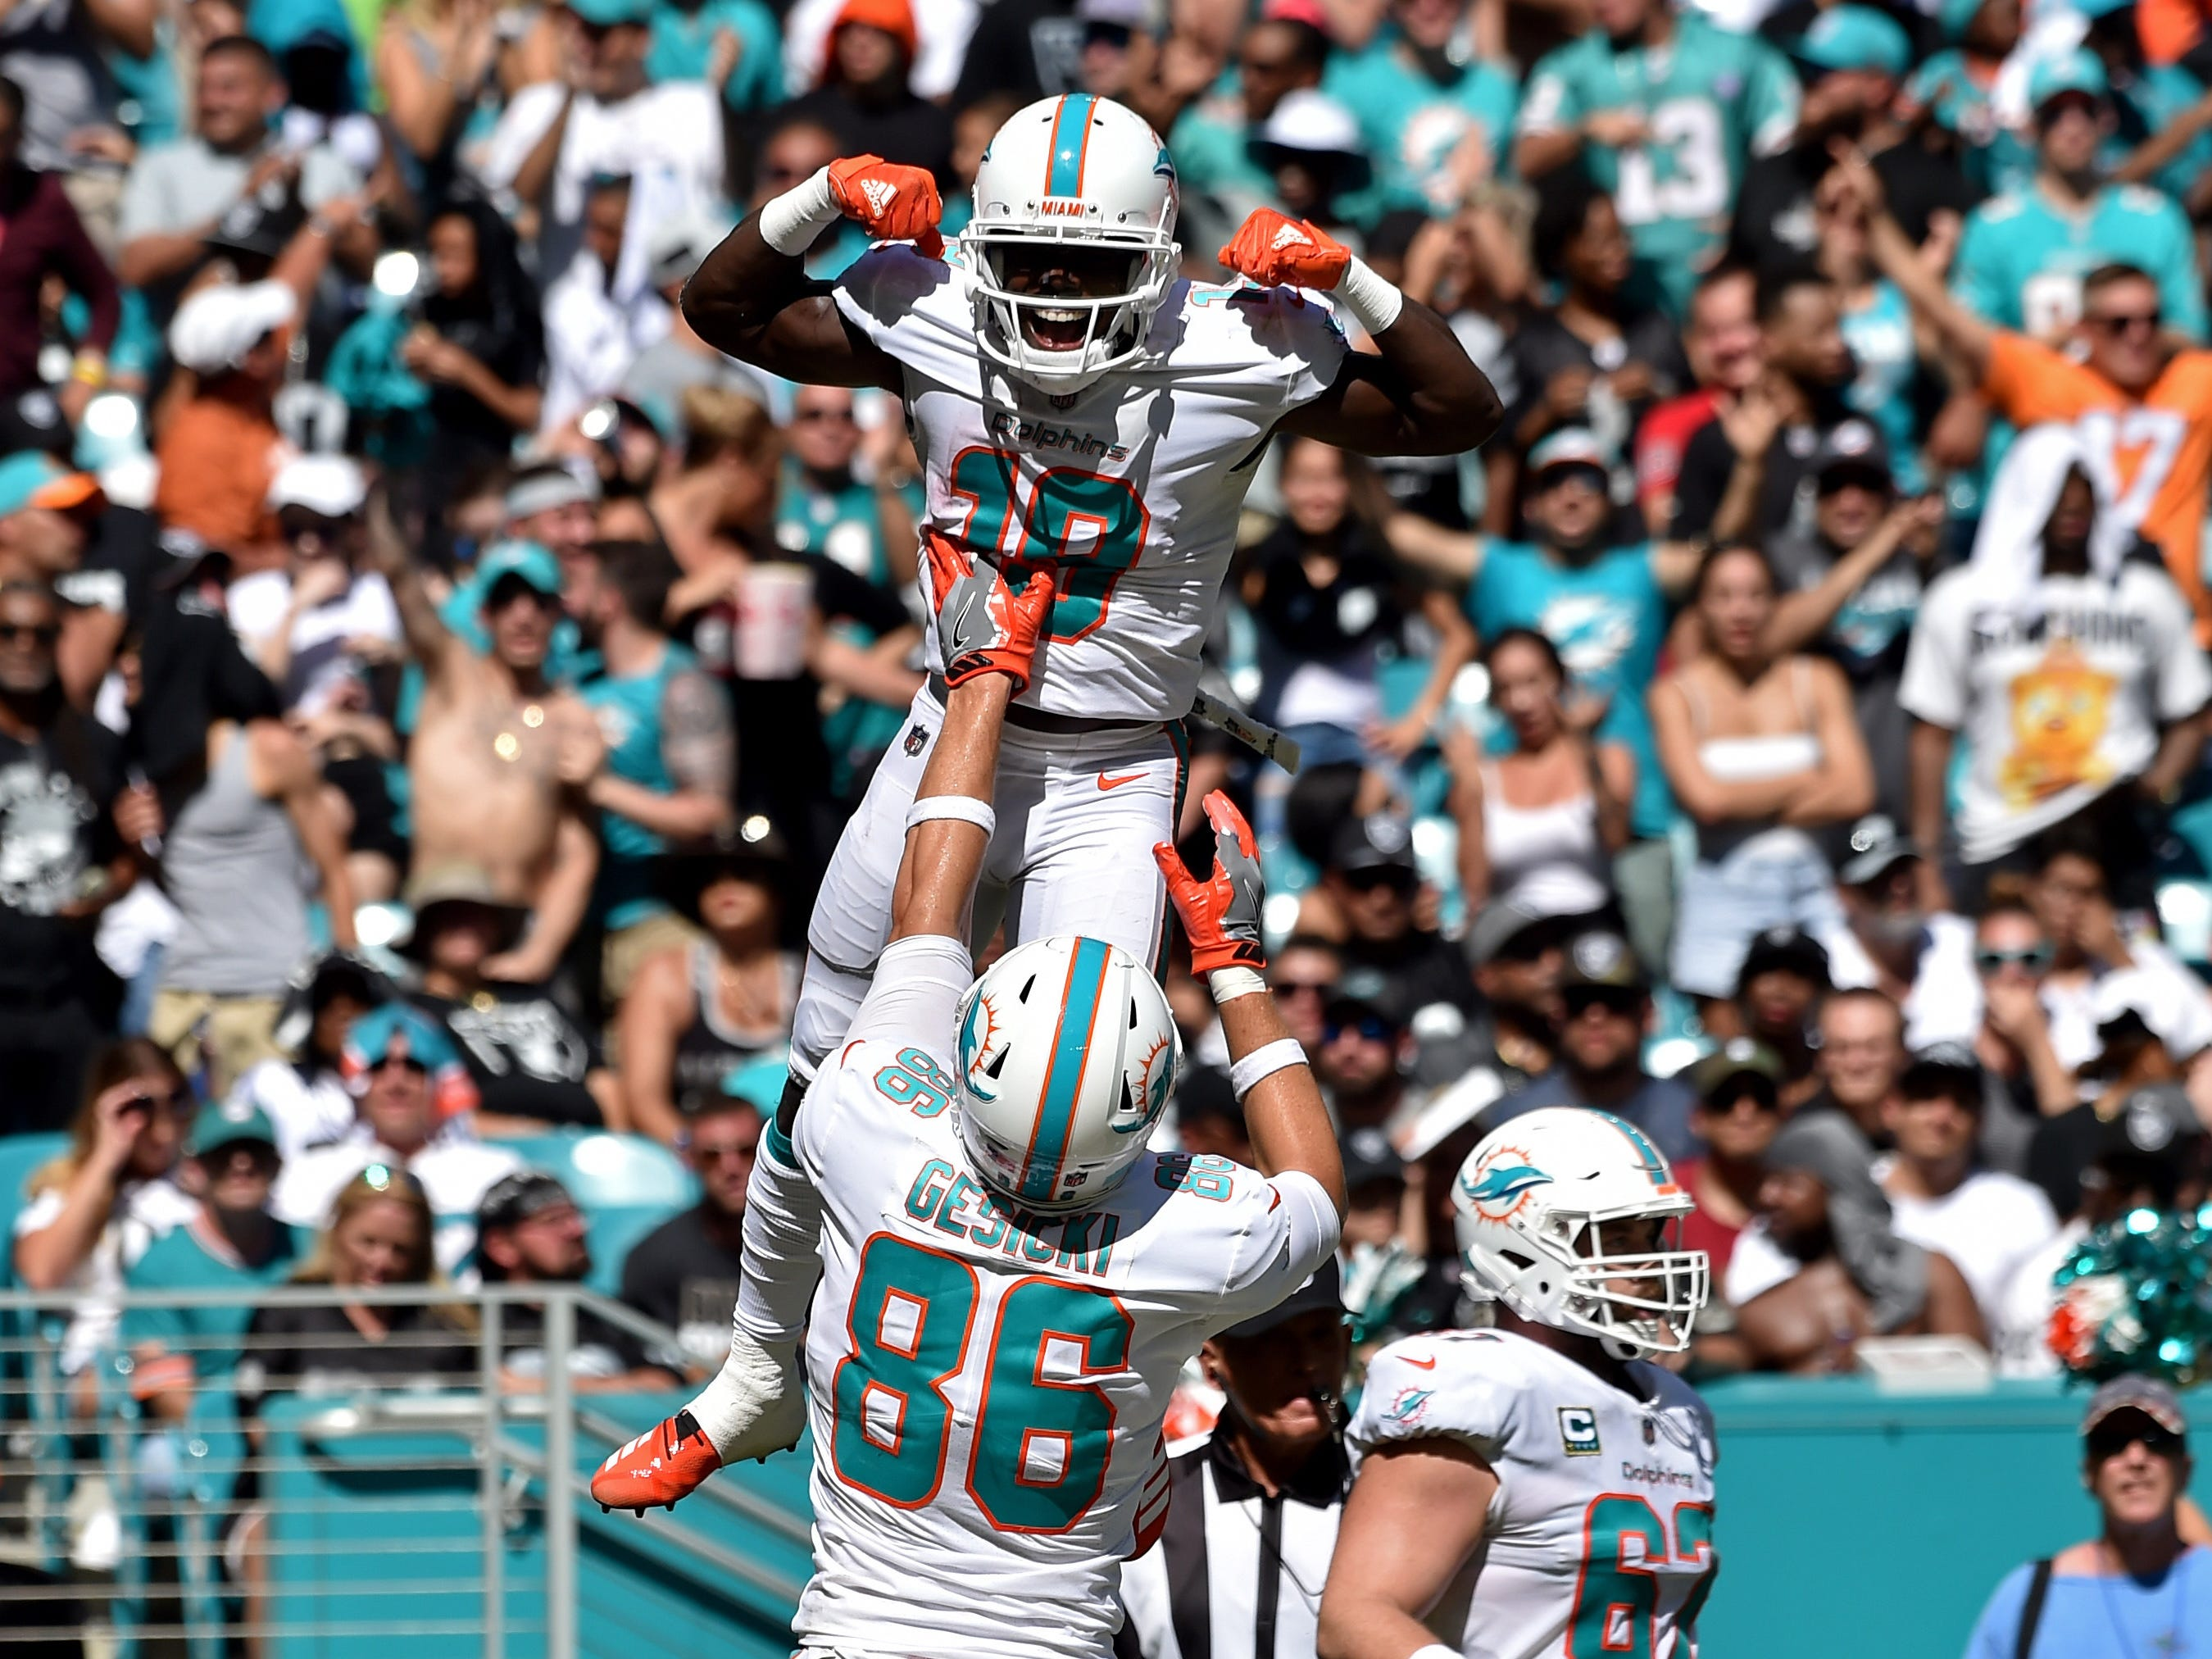 9. Dolphins (18): Thanks to weak schedule, on pace to finish 19-0 and forever erase mythic '72 Dolphins from record book as NFL's most impressive perfect team.